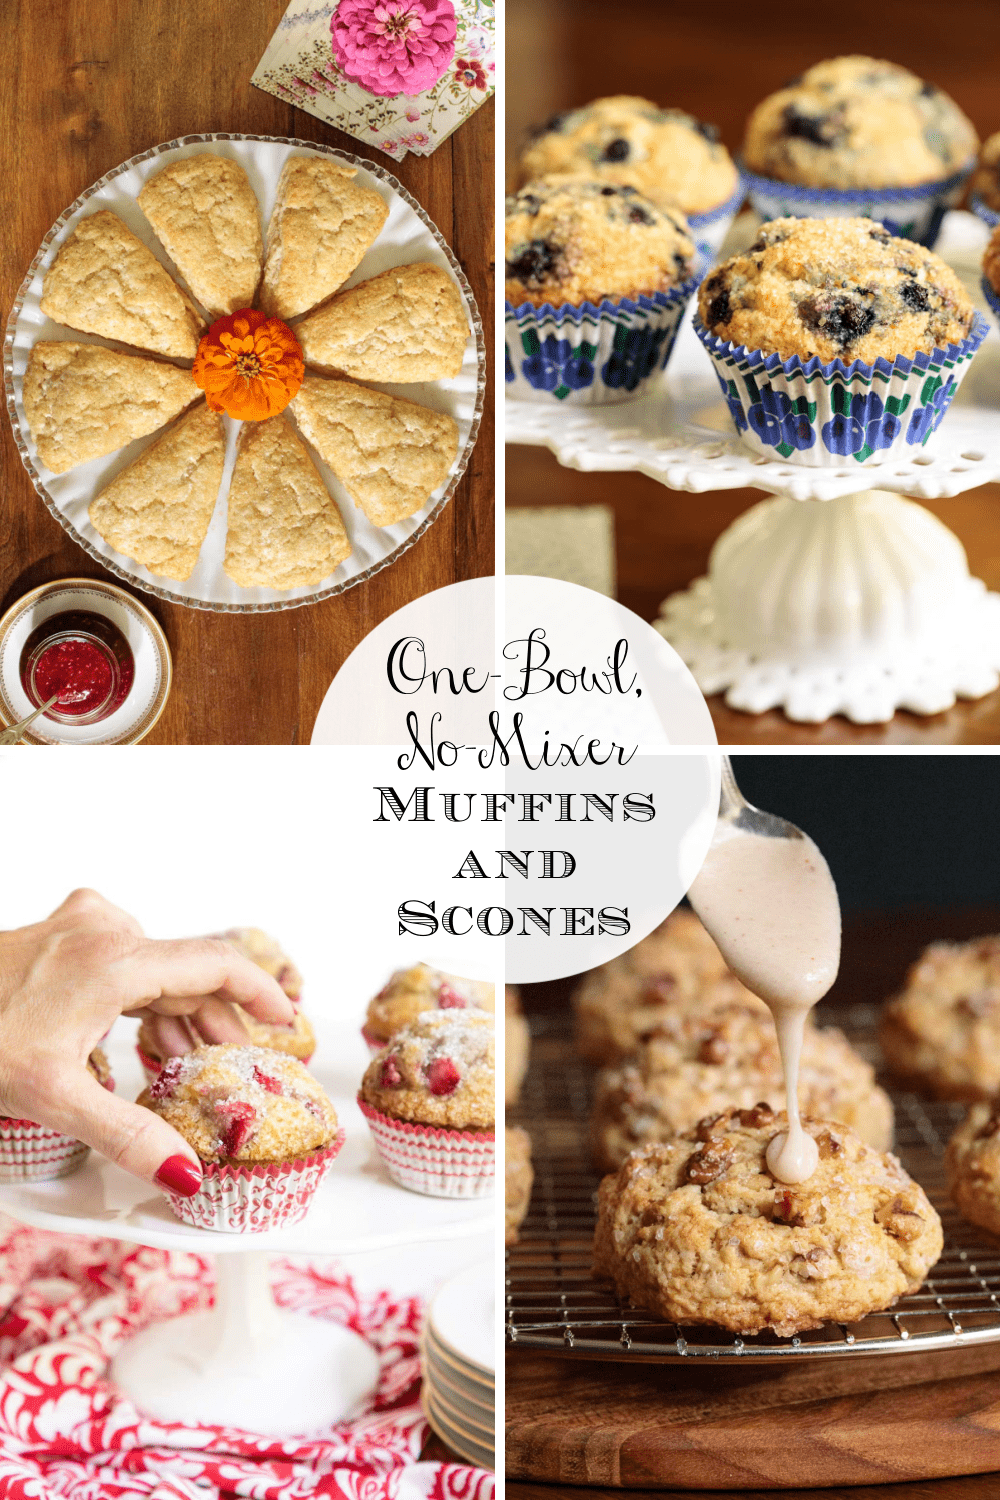 One-Bowl, No-Mixer Muffins and Scones